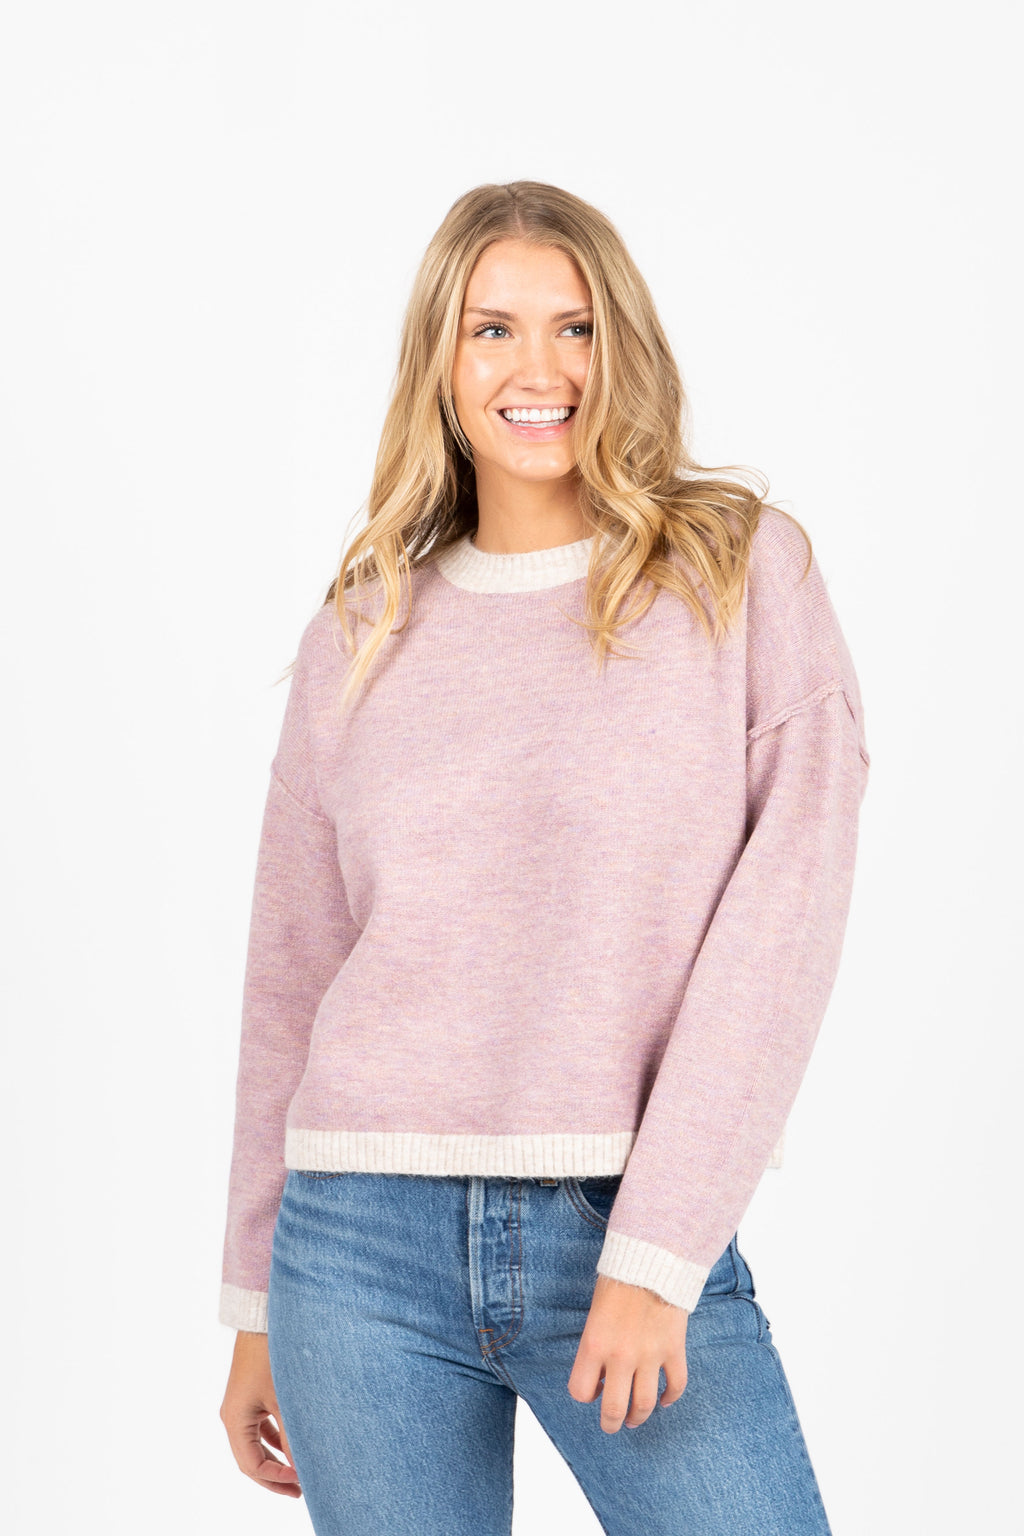 The Lampito Contrast Sweater in Mauve